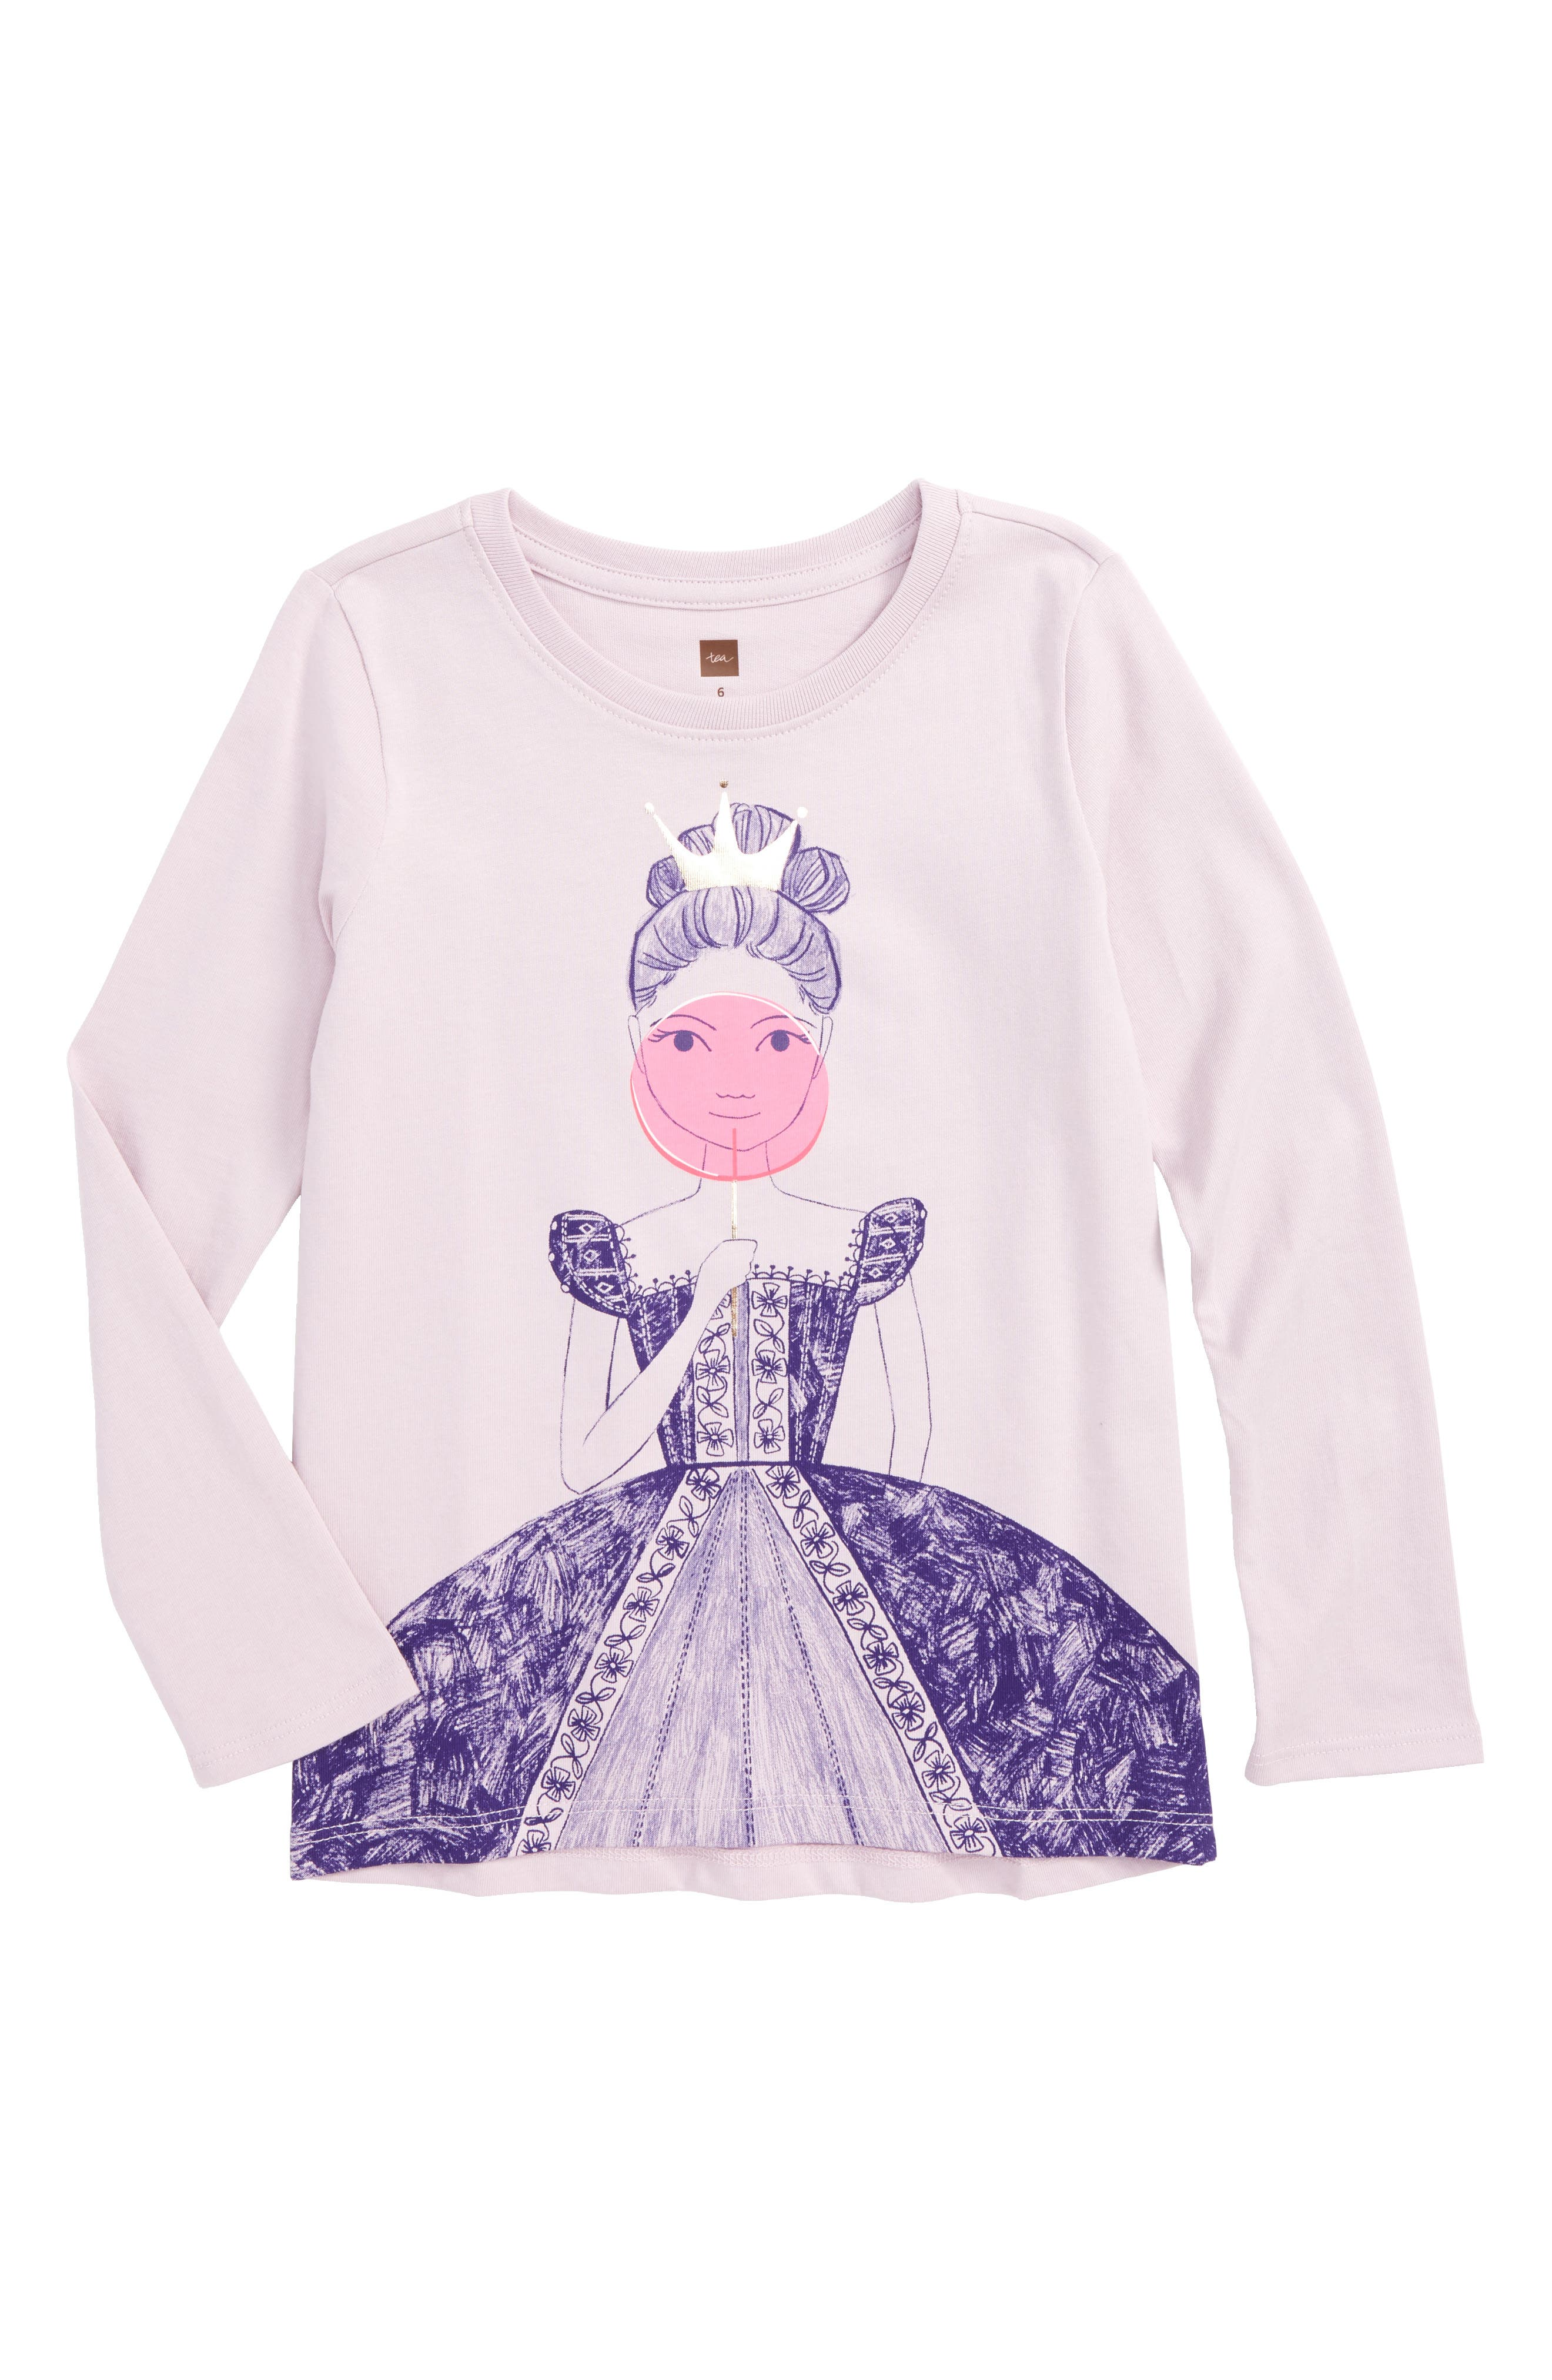 Queen of Scots Graphic Tee,                             Main thumbnail 1, color,                             544